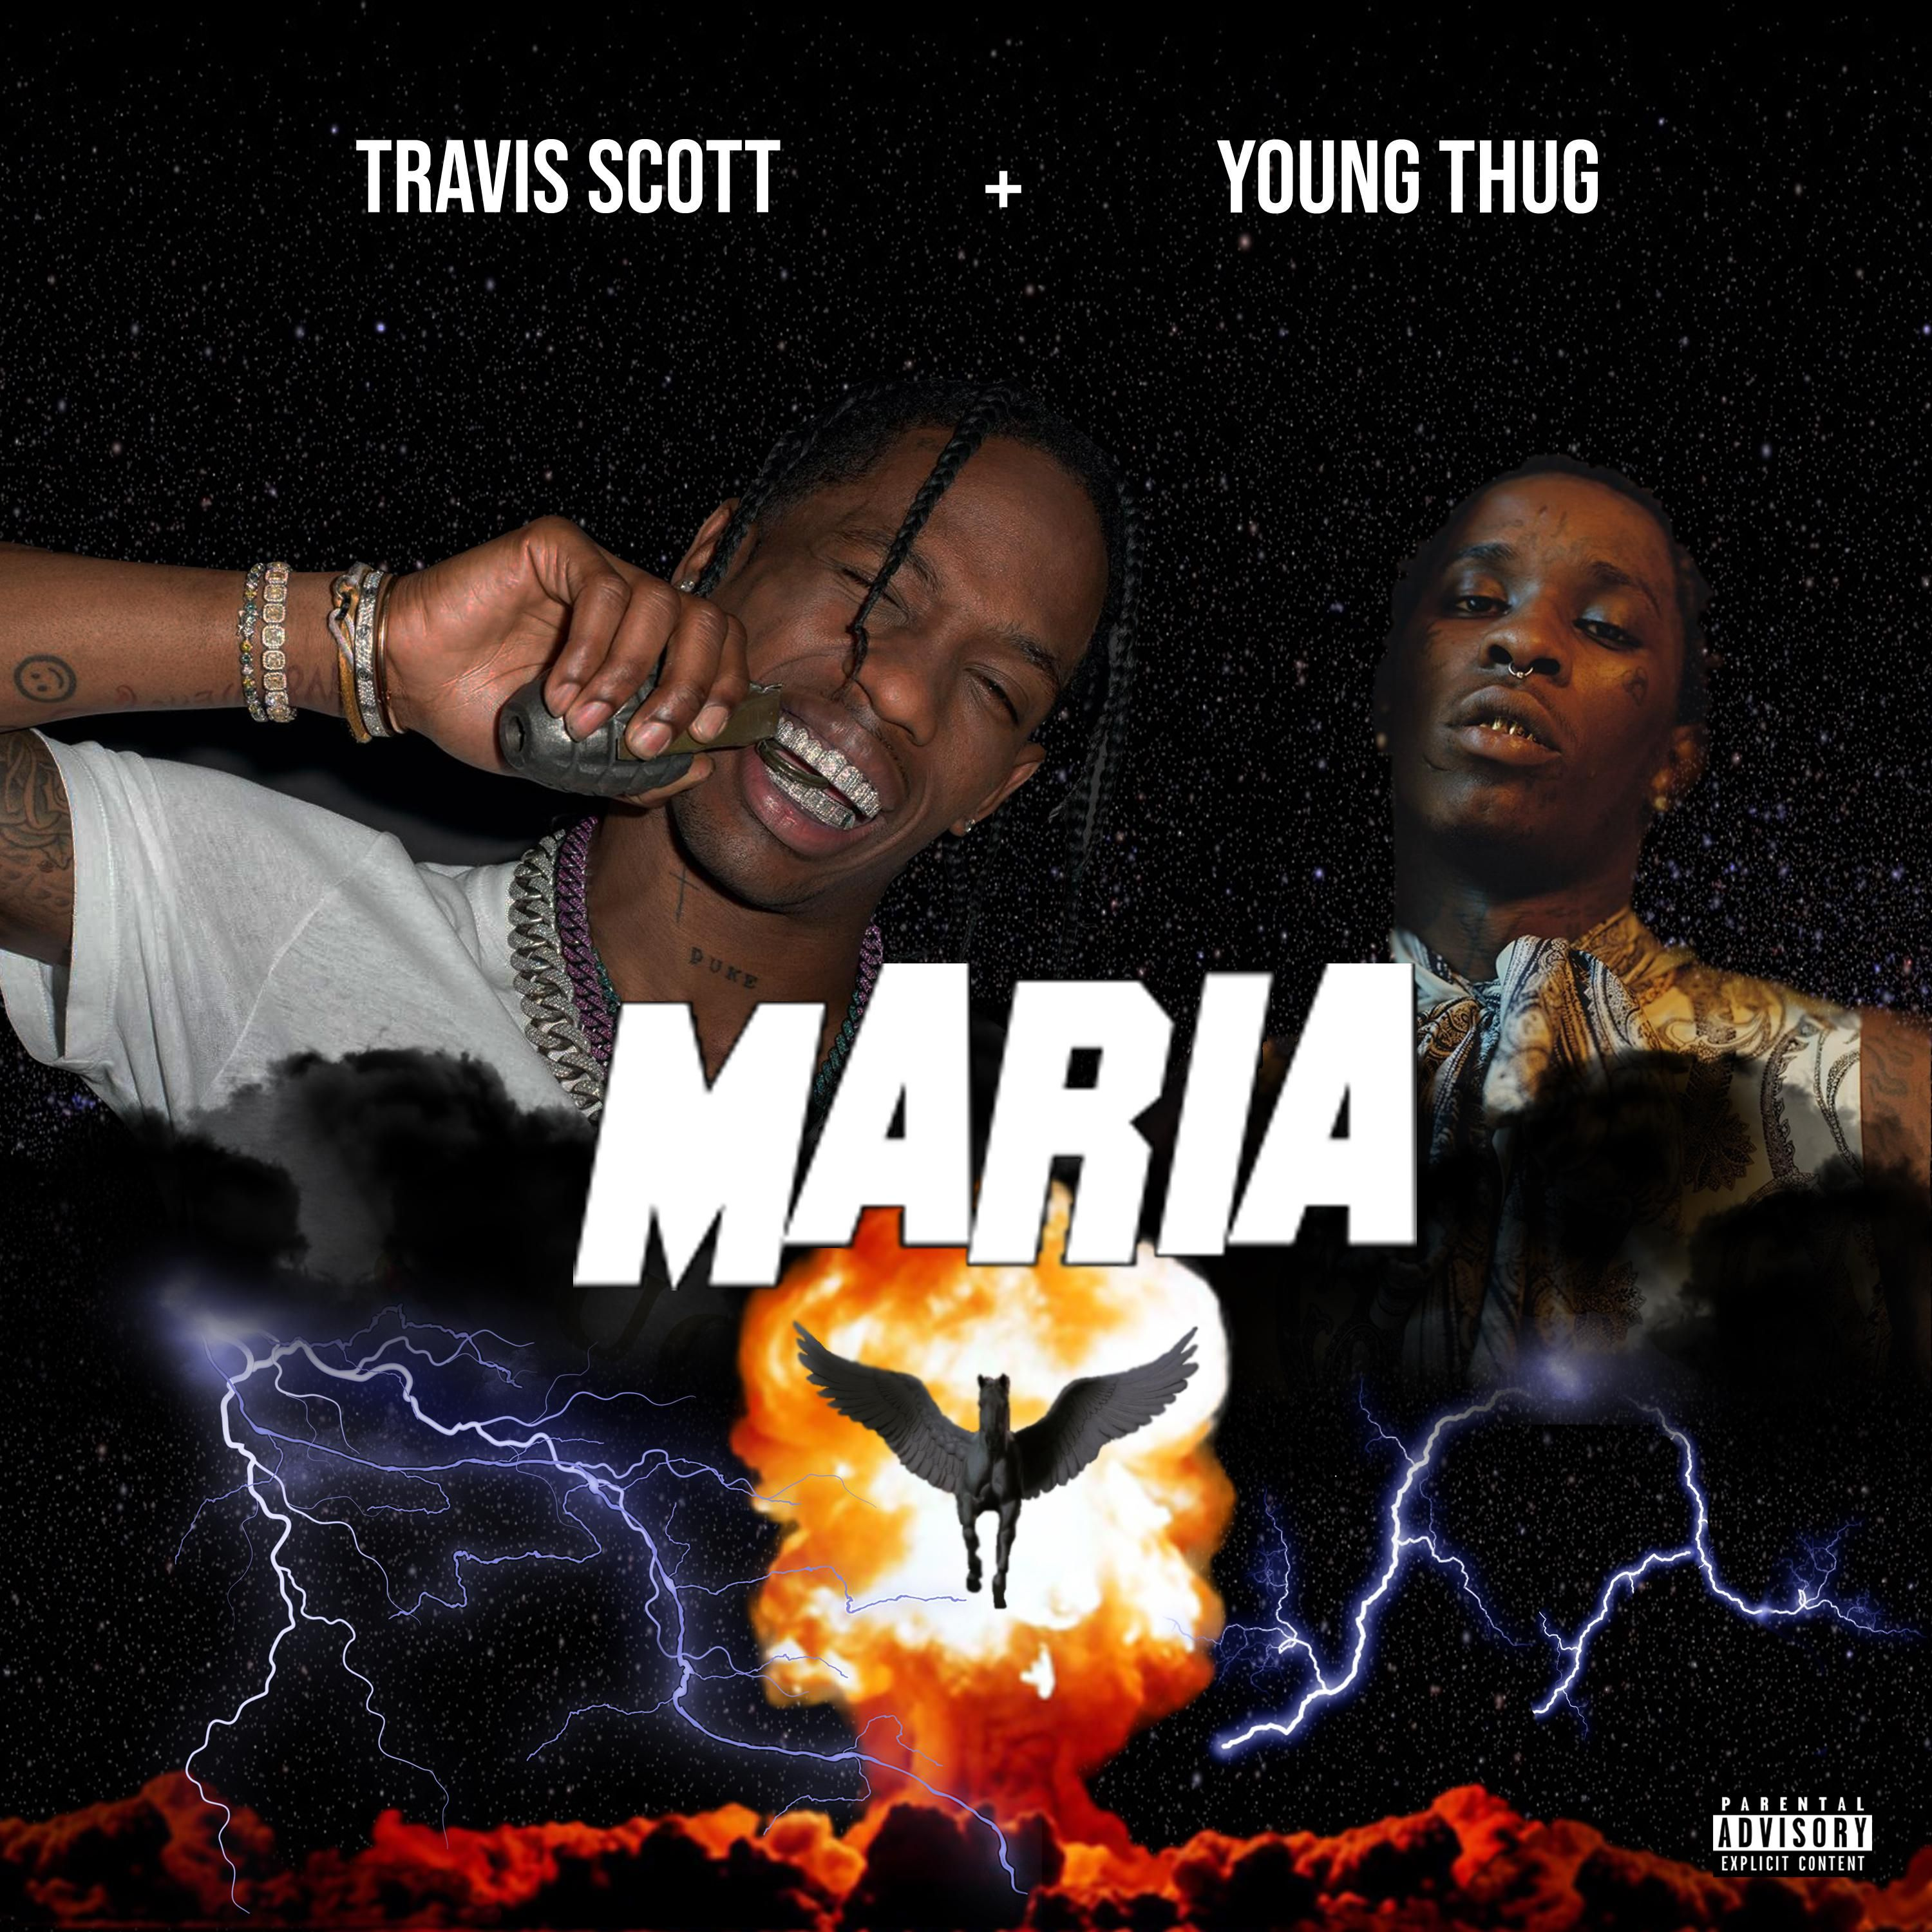 Travis Scott ft. Young Thug Maria Young thug, Travis